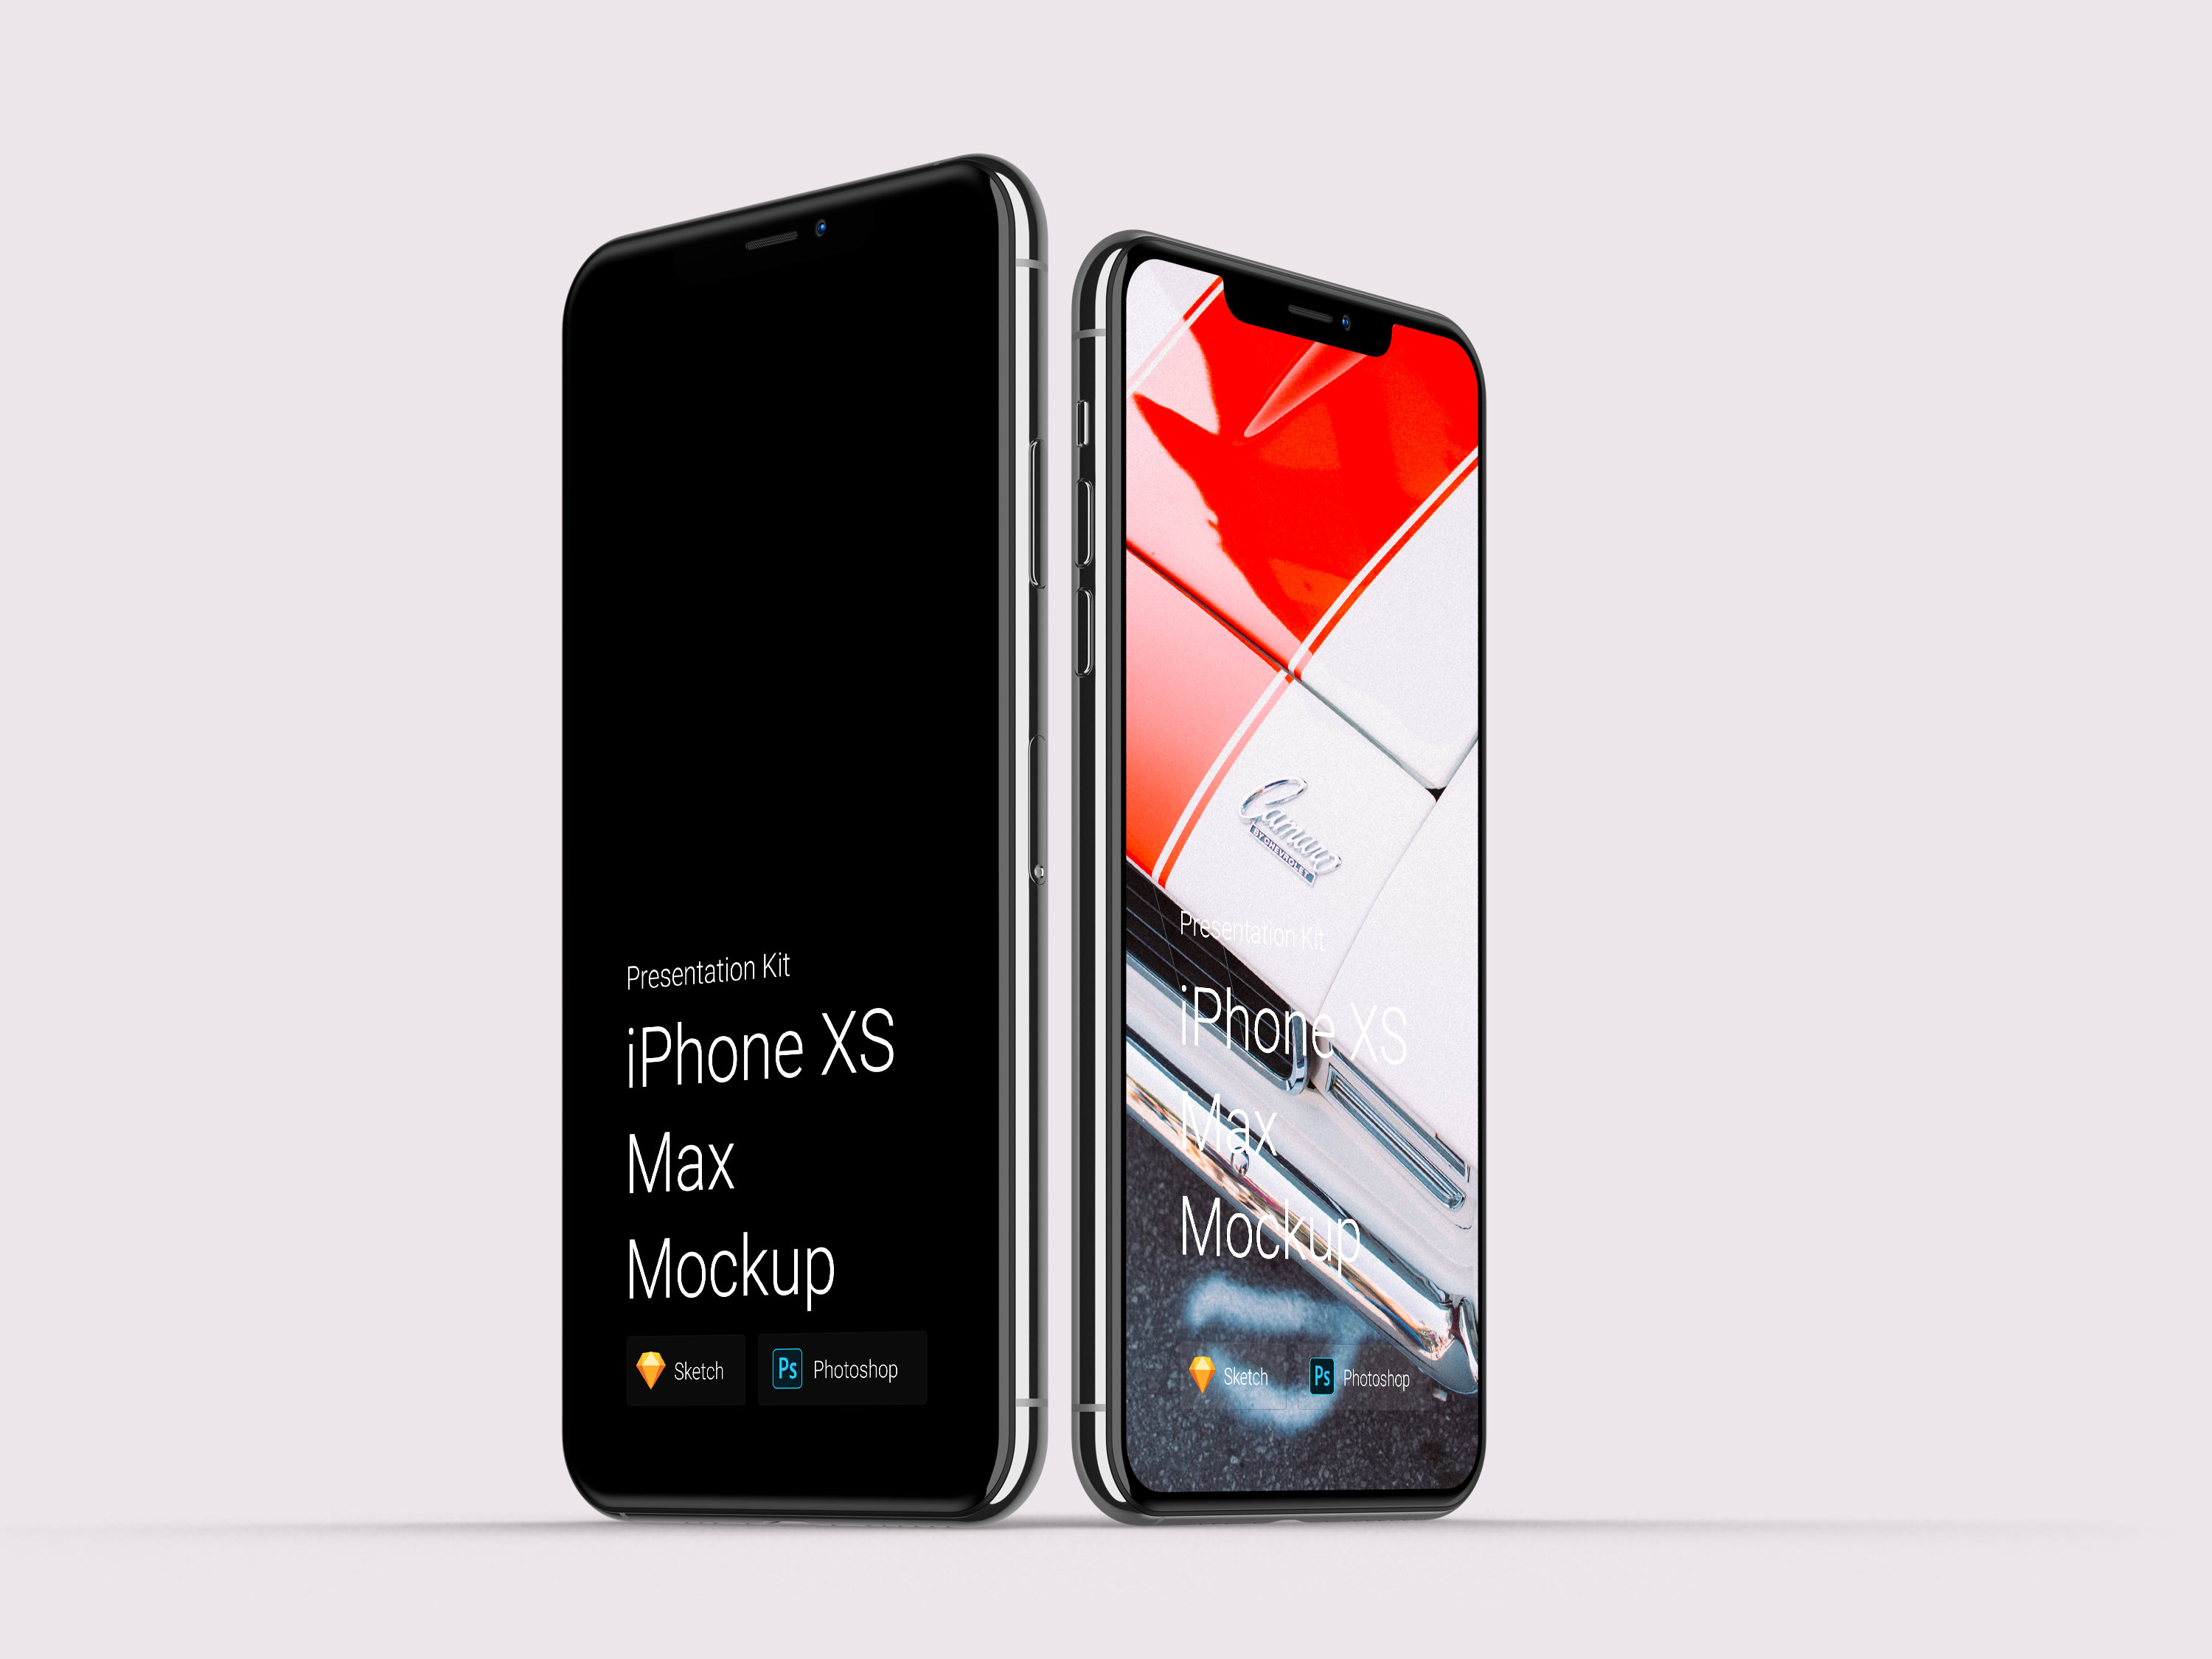 Download iPhone XS Max Mockups for Sketch and Photoshop